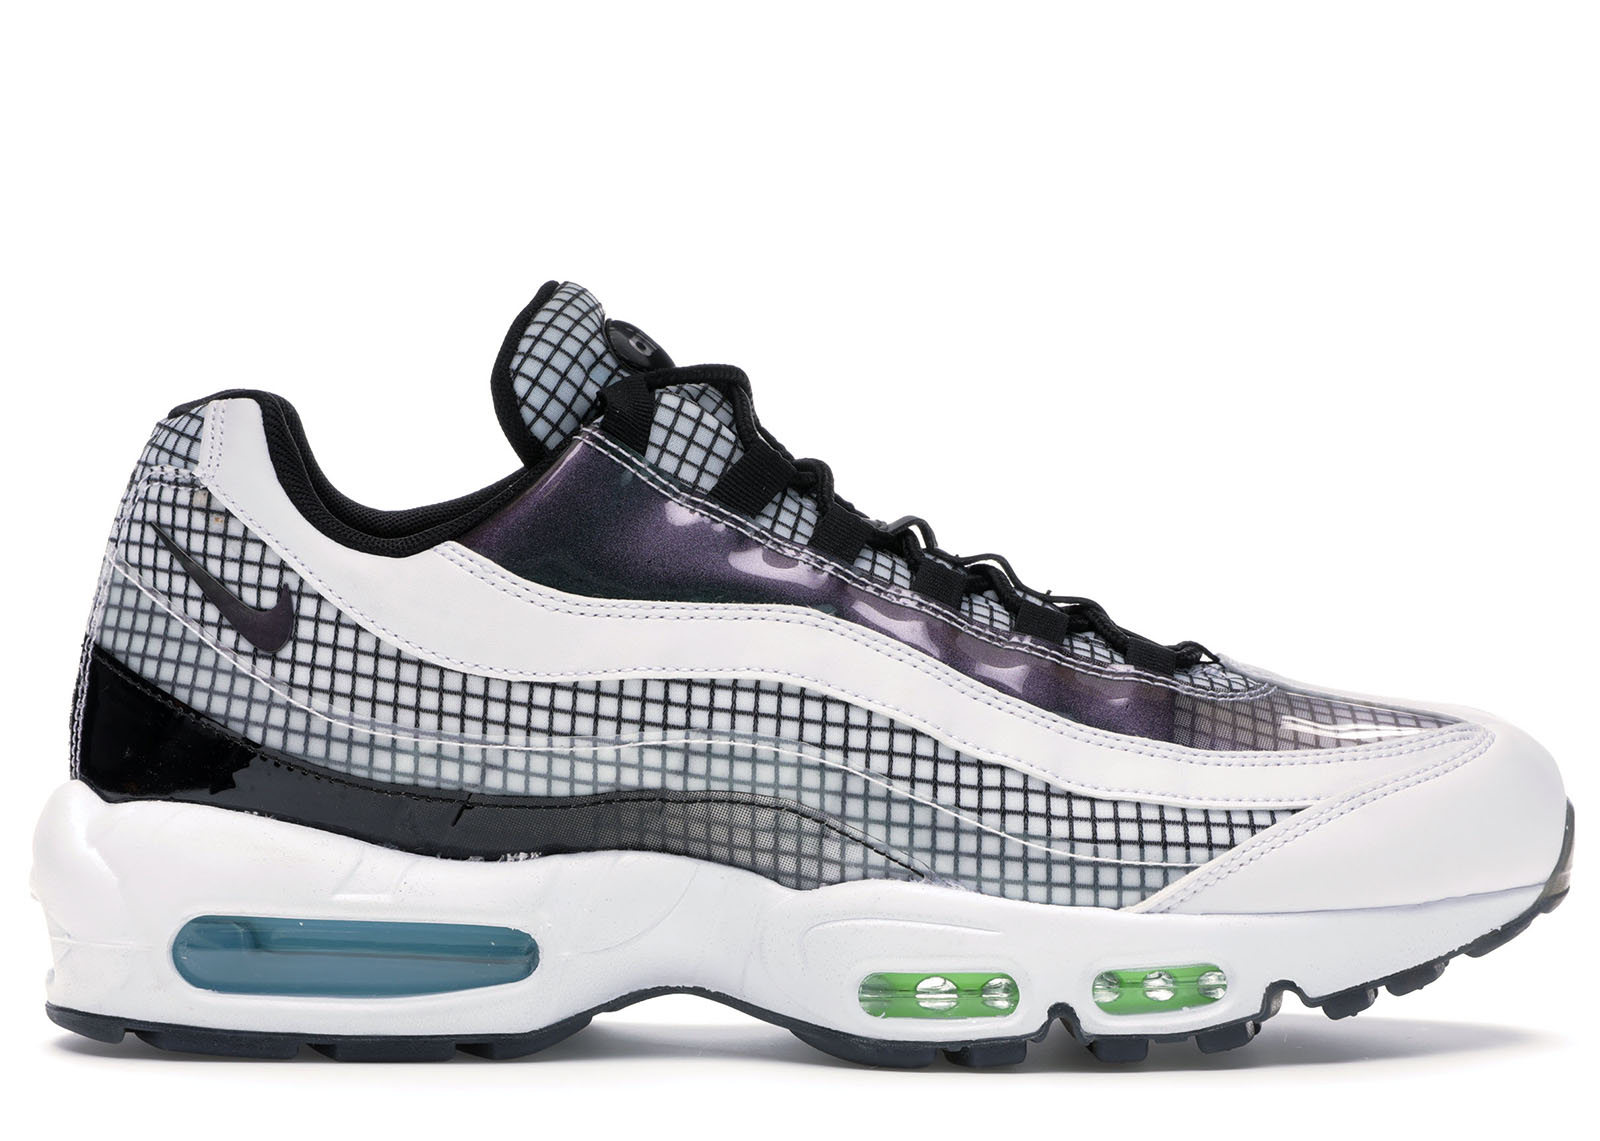 Nike Air Max 95 Shoes New Highest Bids